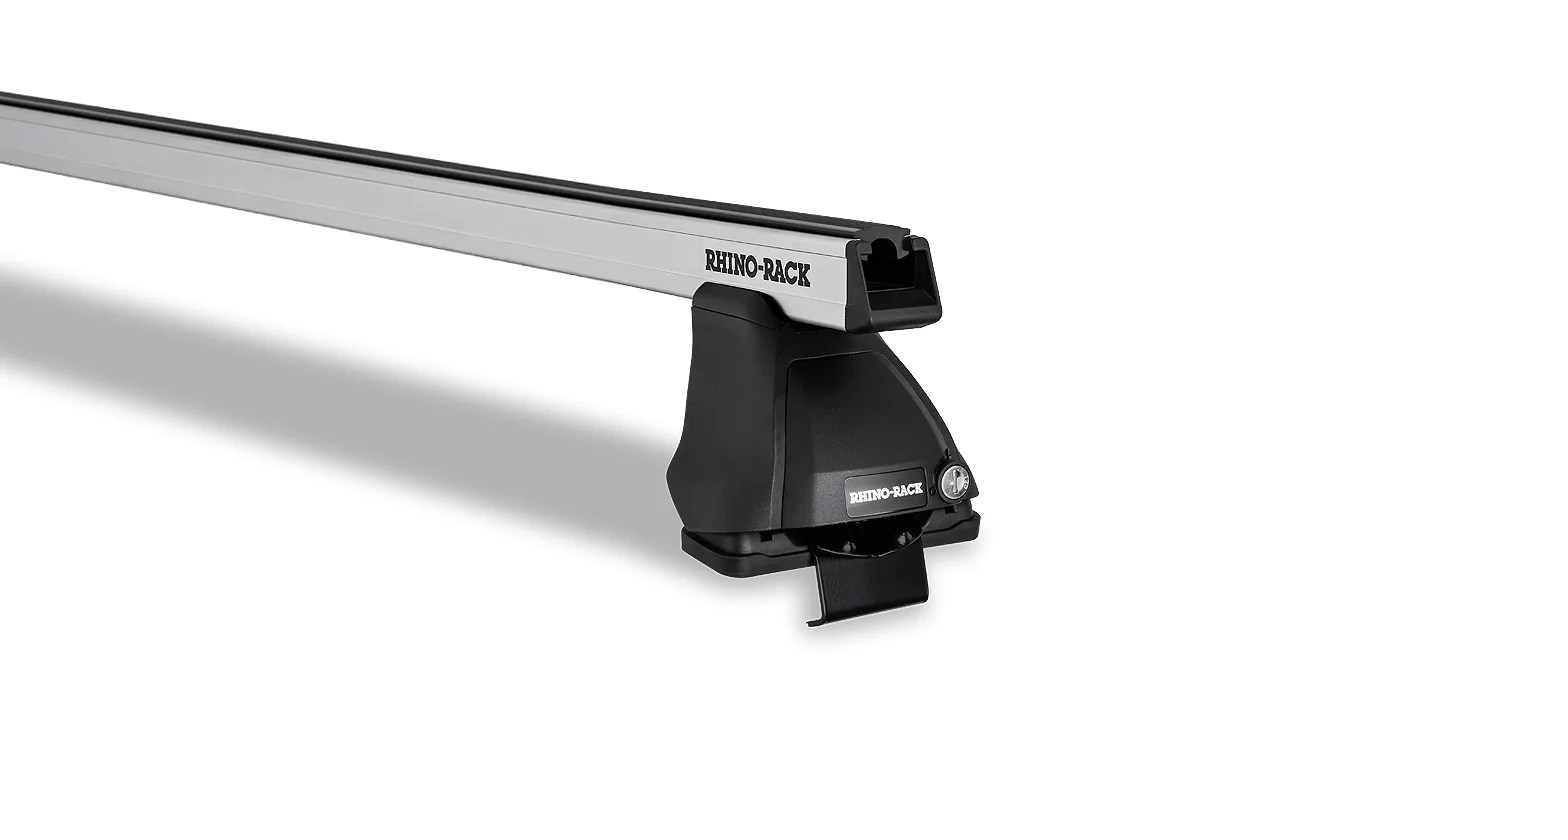 heavy duty 2500 roof rack gmc sierra 3500 hd 4dr pick up crew cab 1 15 to 12 19